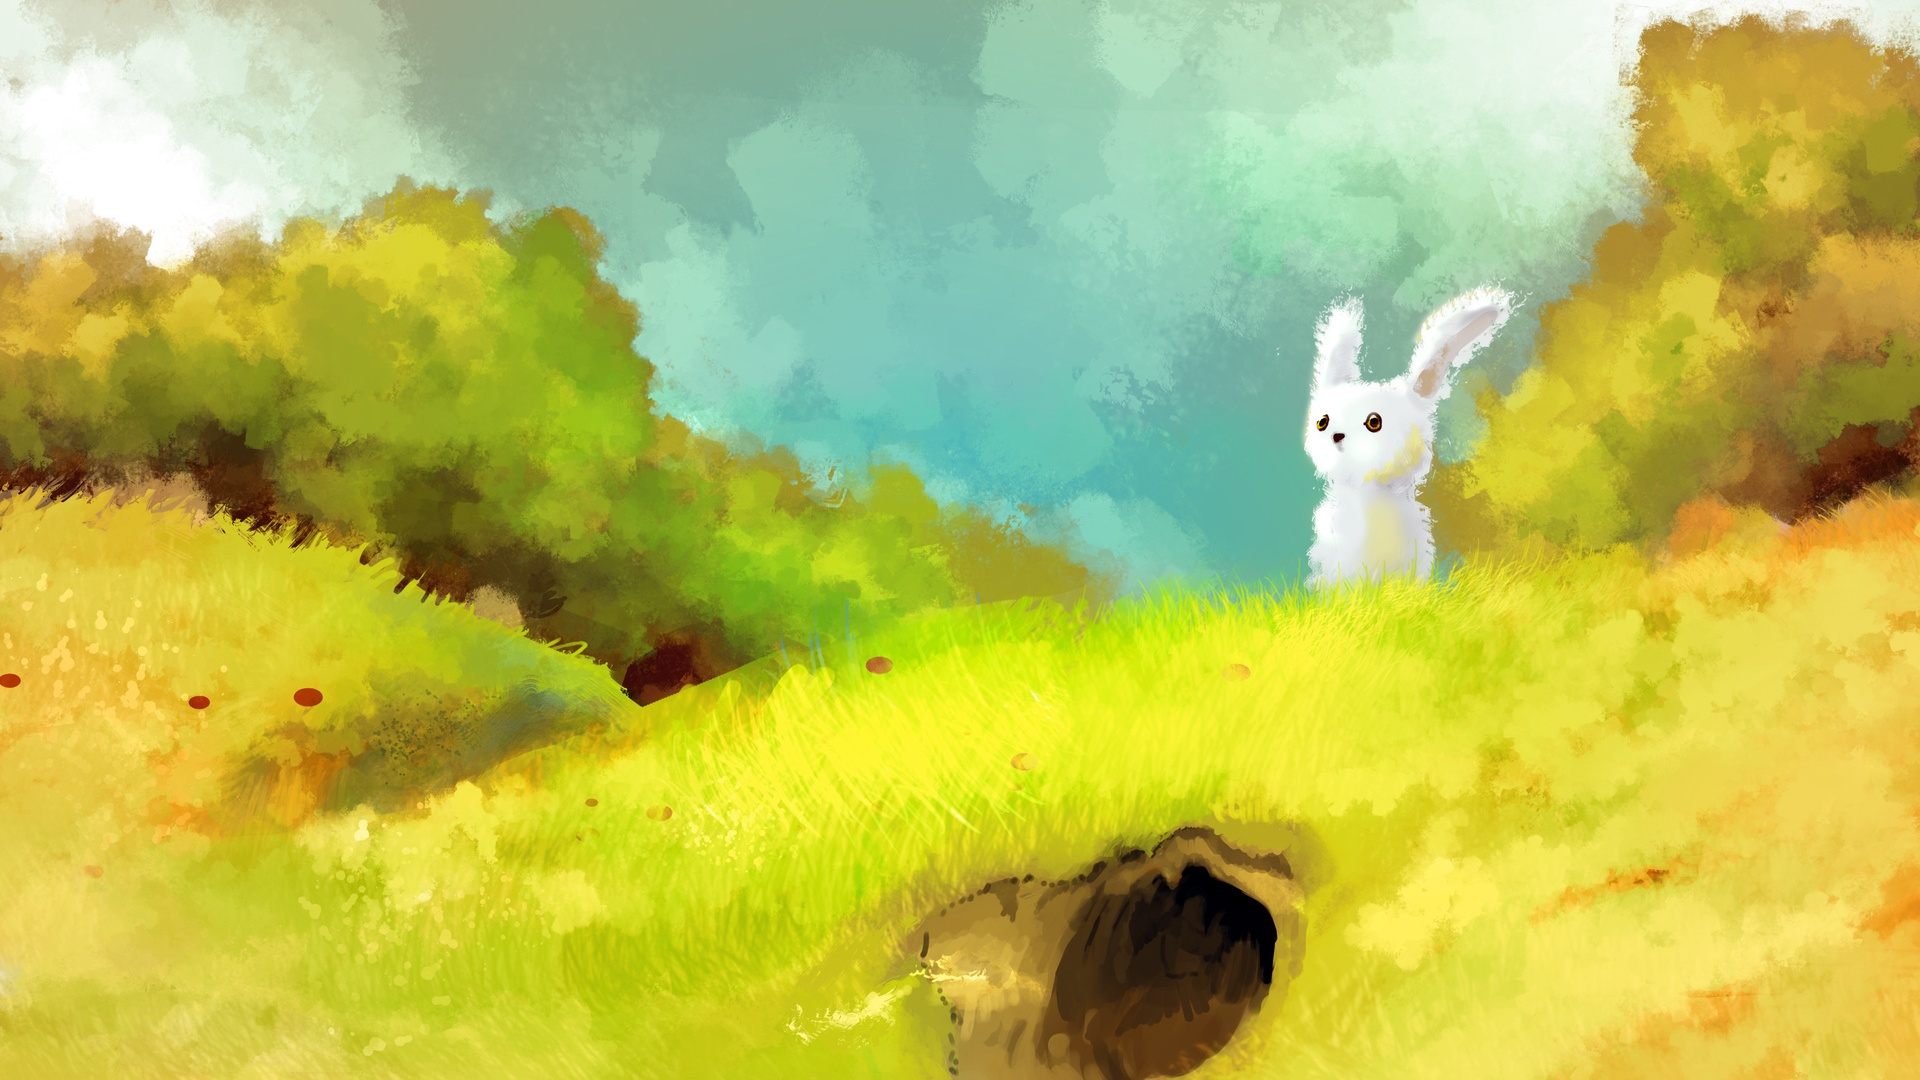 Download Cute Wallpapers For Pc 1920x1080 Cute Bunny Hill Burrow Trees Desktop Pc And Mac